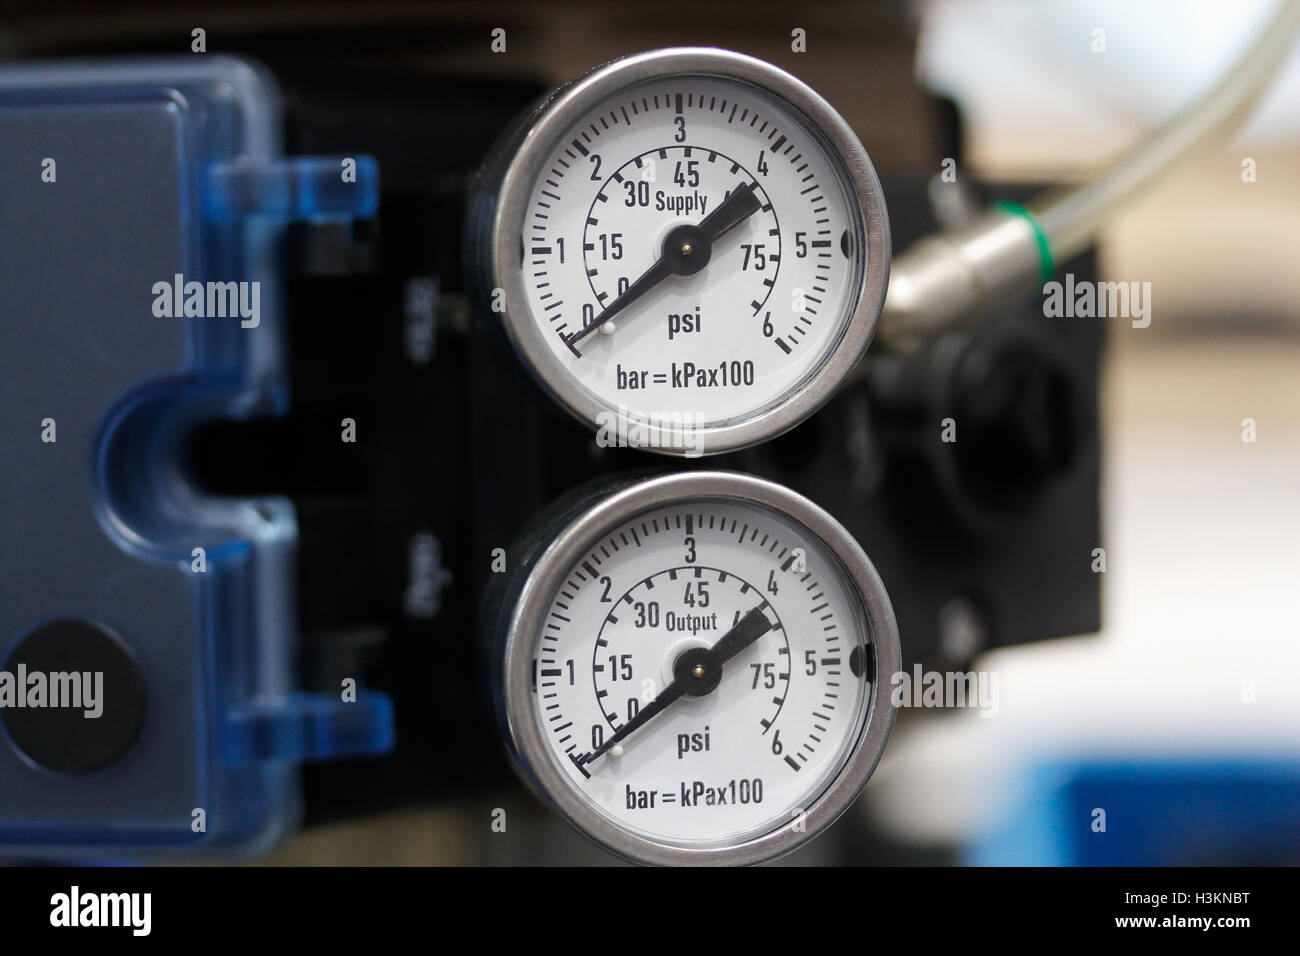 Manometers indicates the pressure of the pipelines. - Stock Image